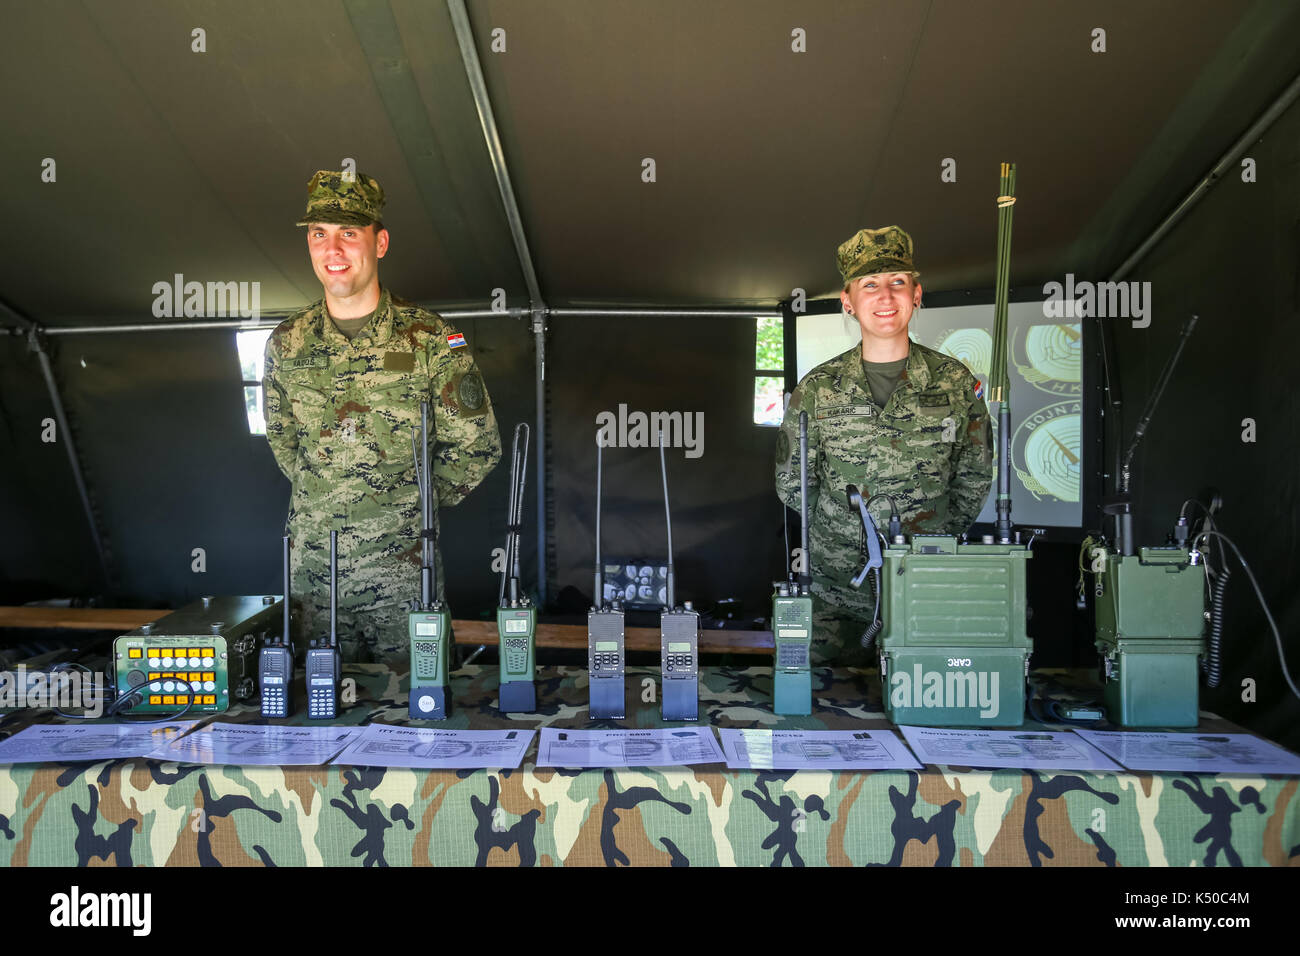 ZAGREB, CROATIA - MAY 28, 2017 : Soldiers with lined up radio Stock